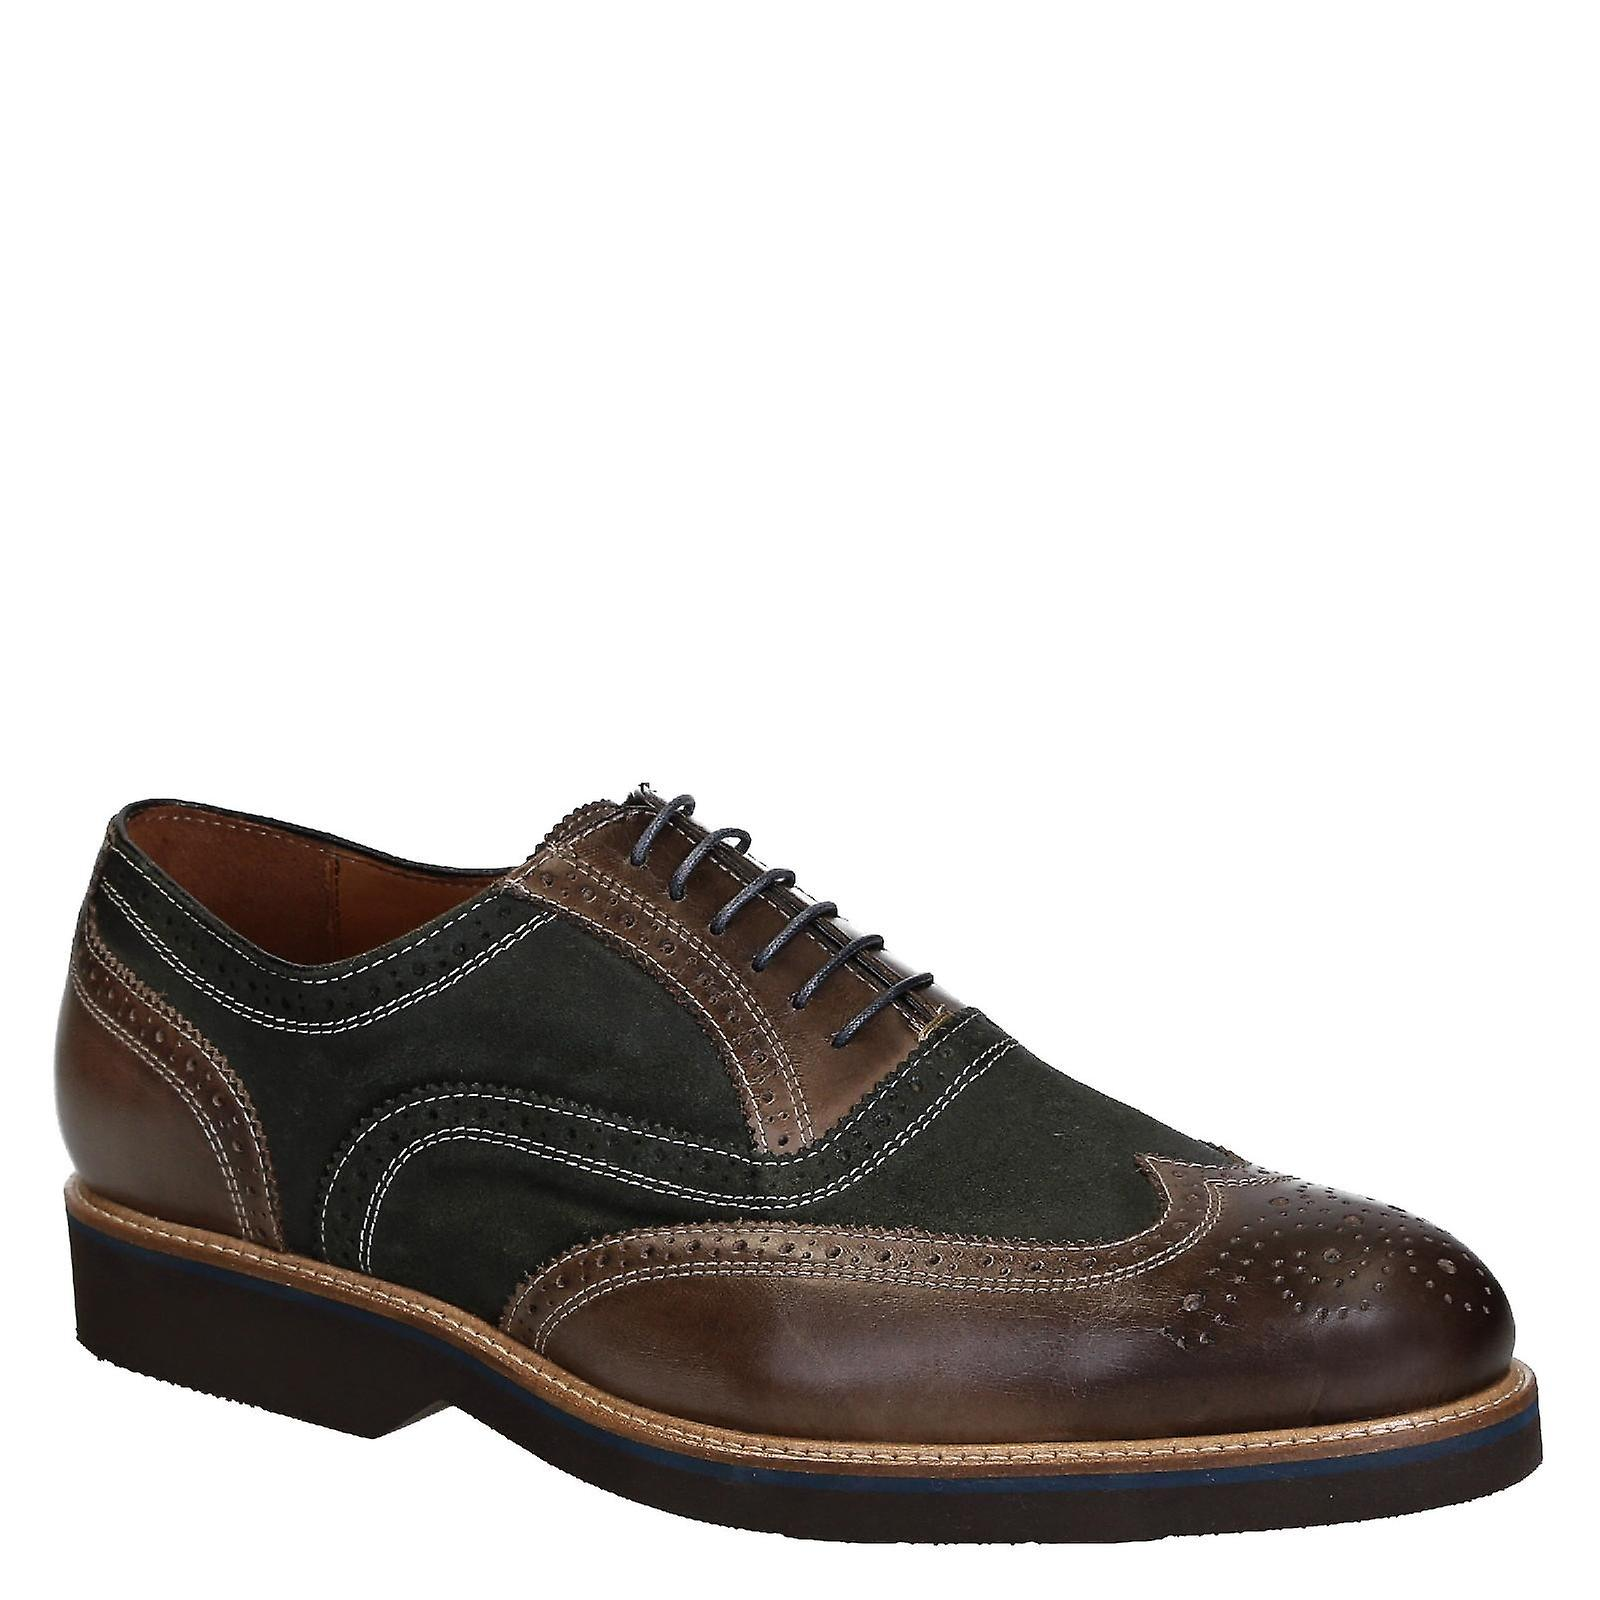 Men& 039;s oxfords scarpe in 2 tones italian leather | all'ingrosso